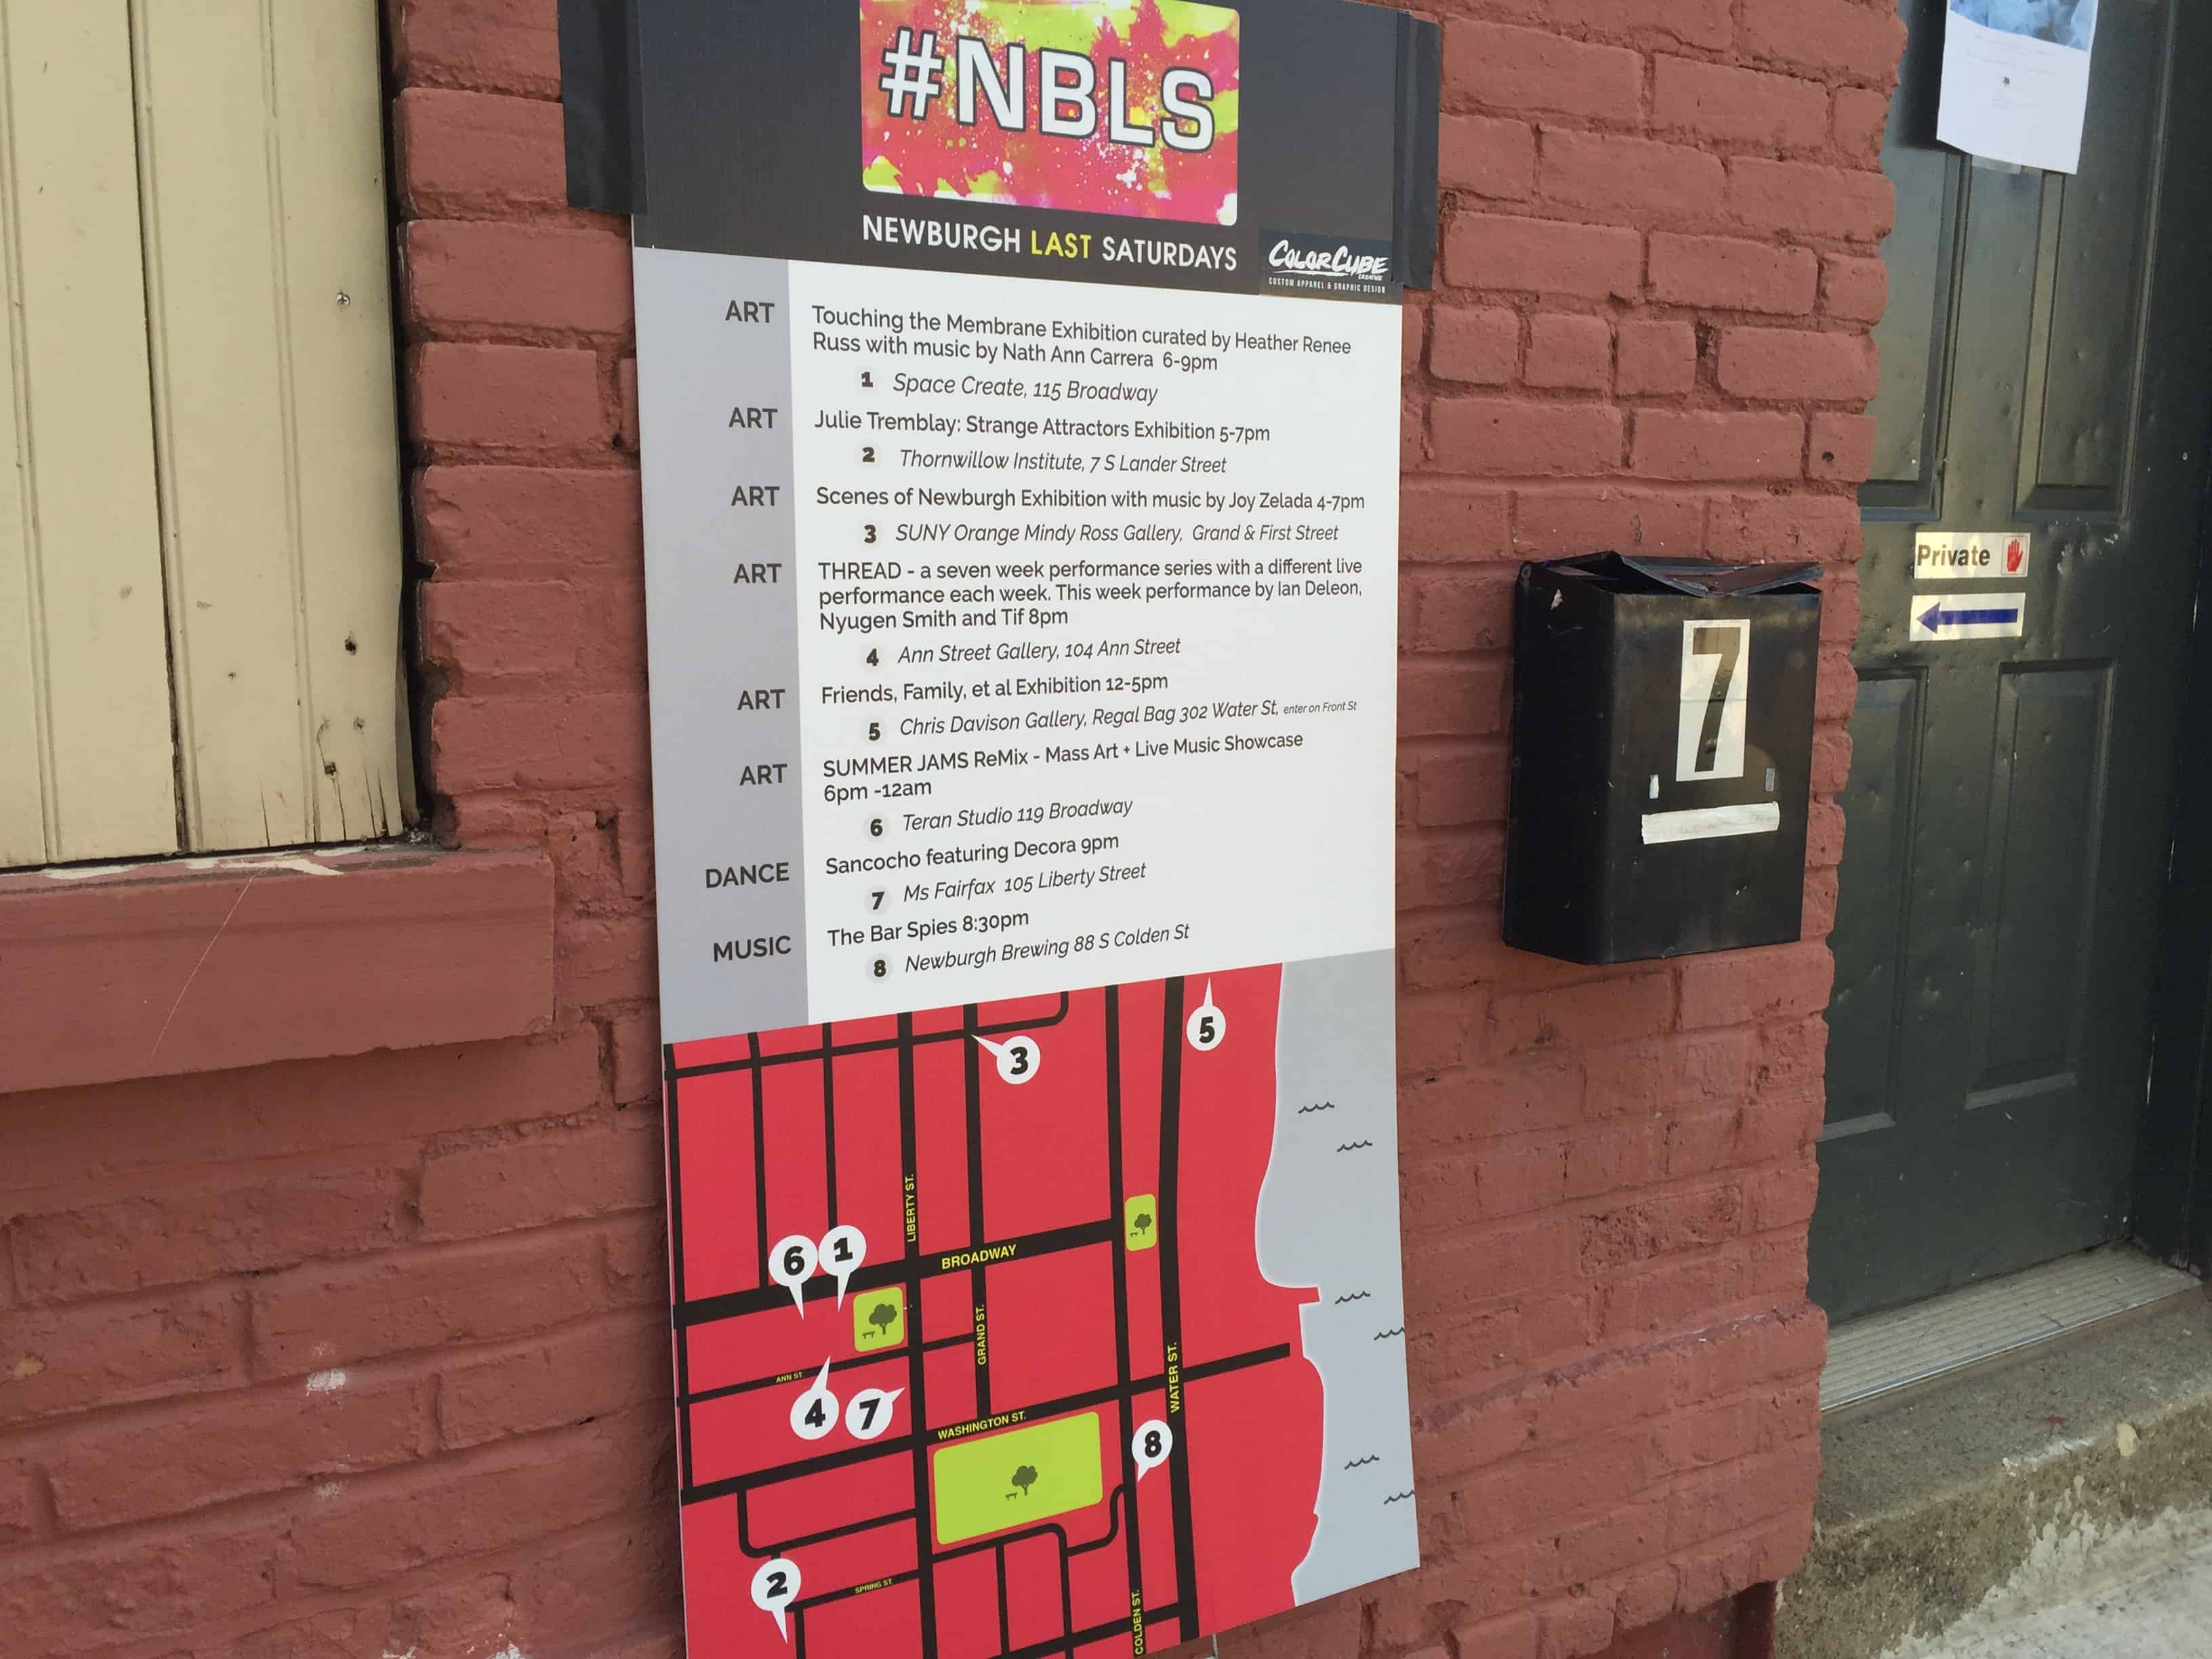 The well-designed map-key signage featuring the mark for #NBLS and a breakdown by type of the highlight events for May